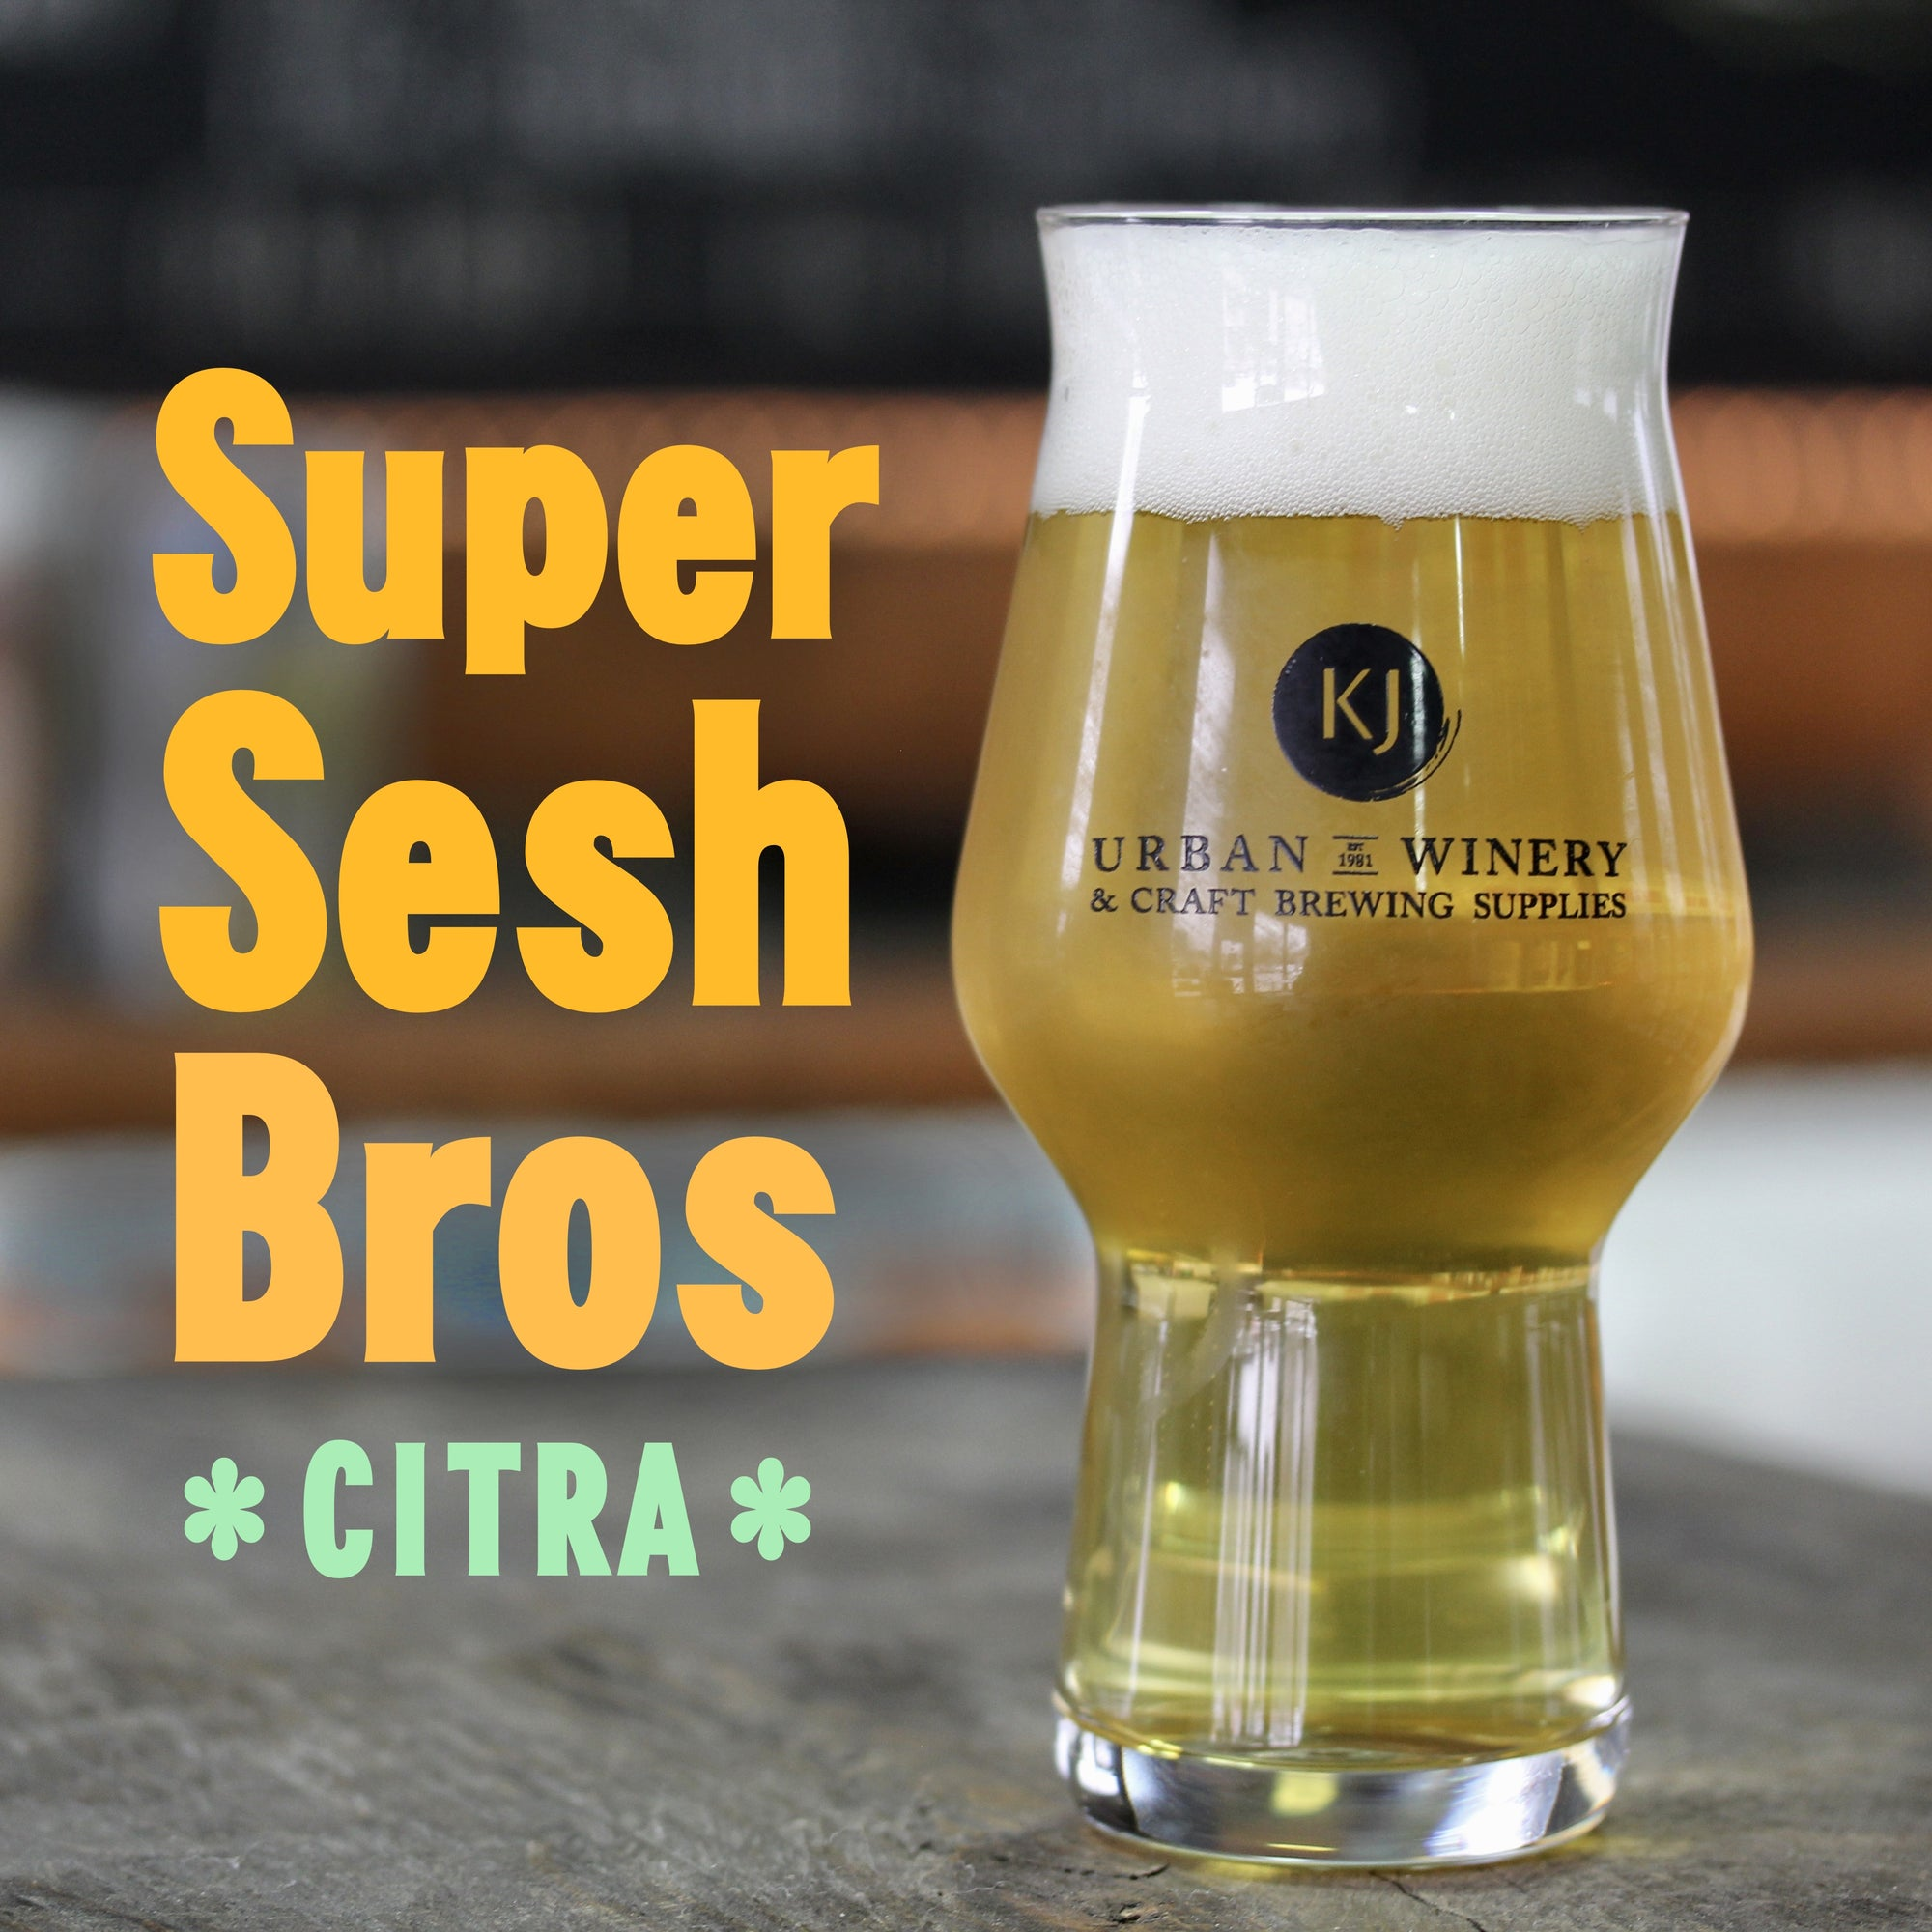 Super Sesh Bros - Citra